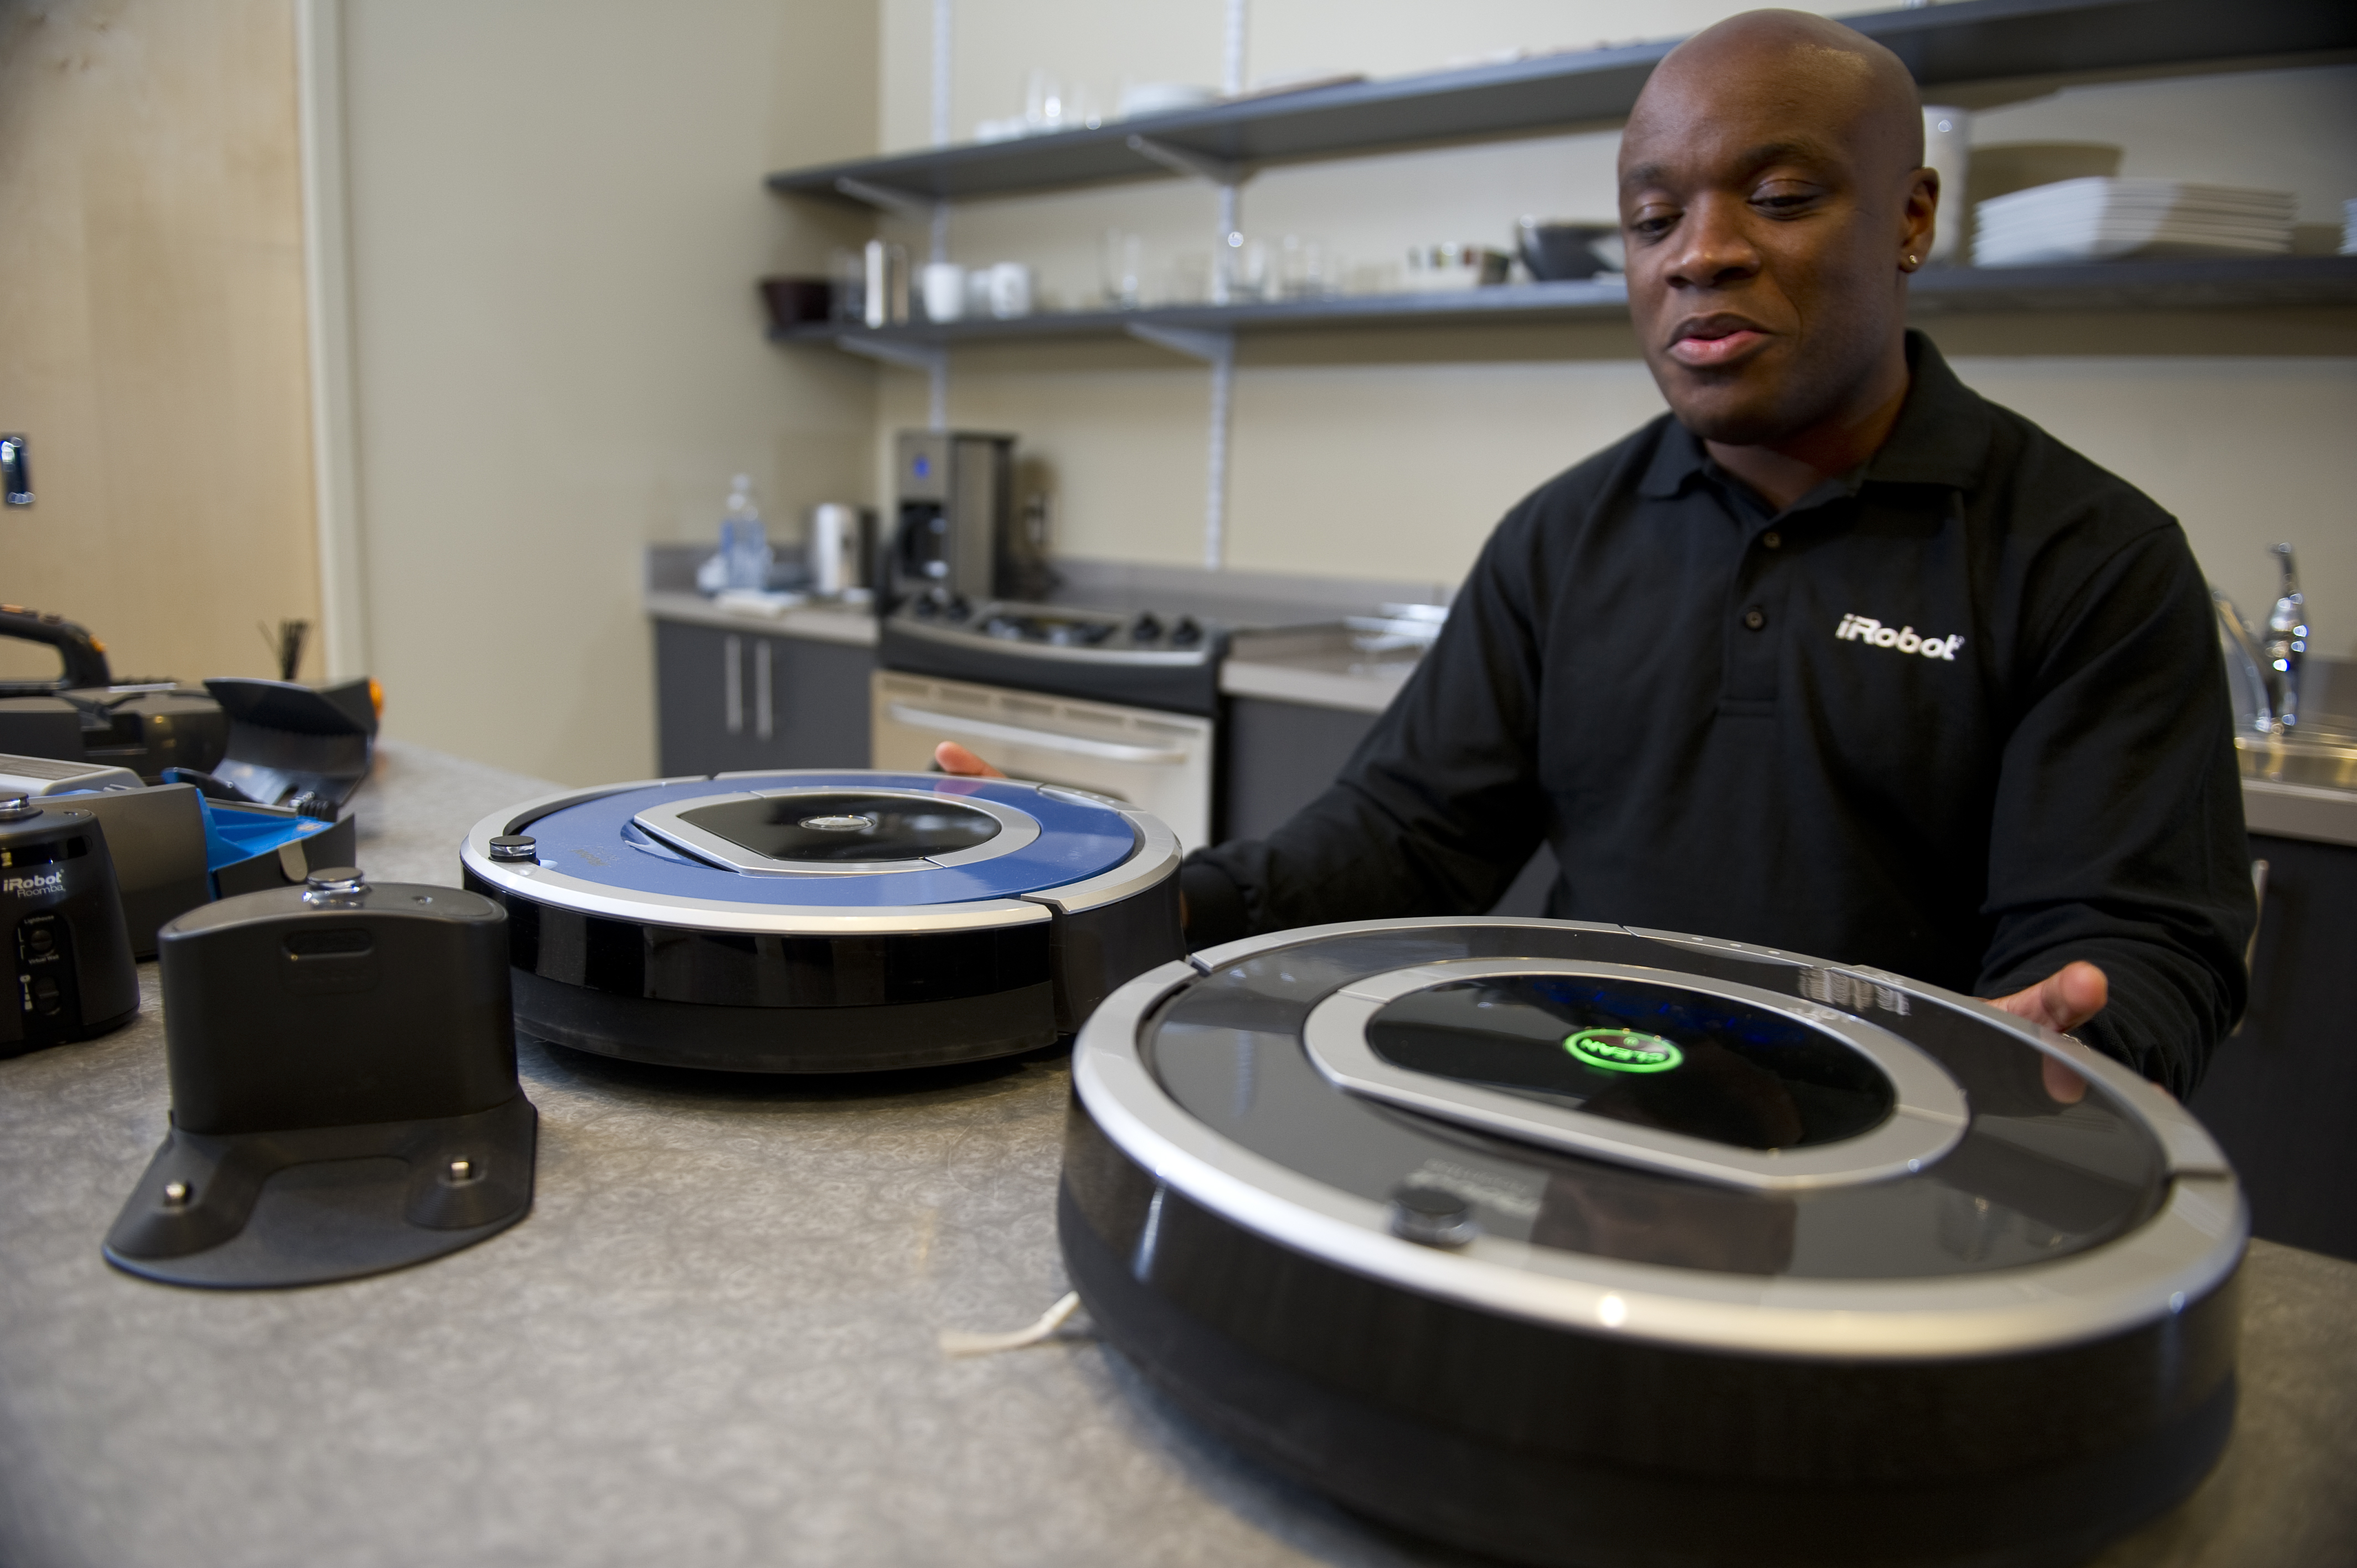 The features of the iRobot Roomba are demonstrated by an iRobot employee in a show room at the iRobot offices, on August 24, 2012 in Bedford, Massachusetts.